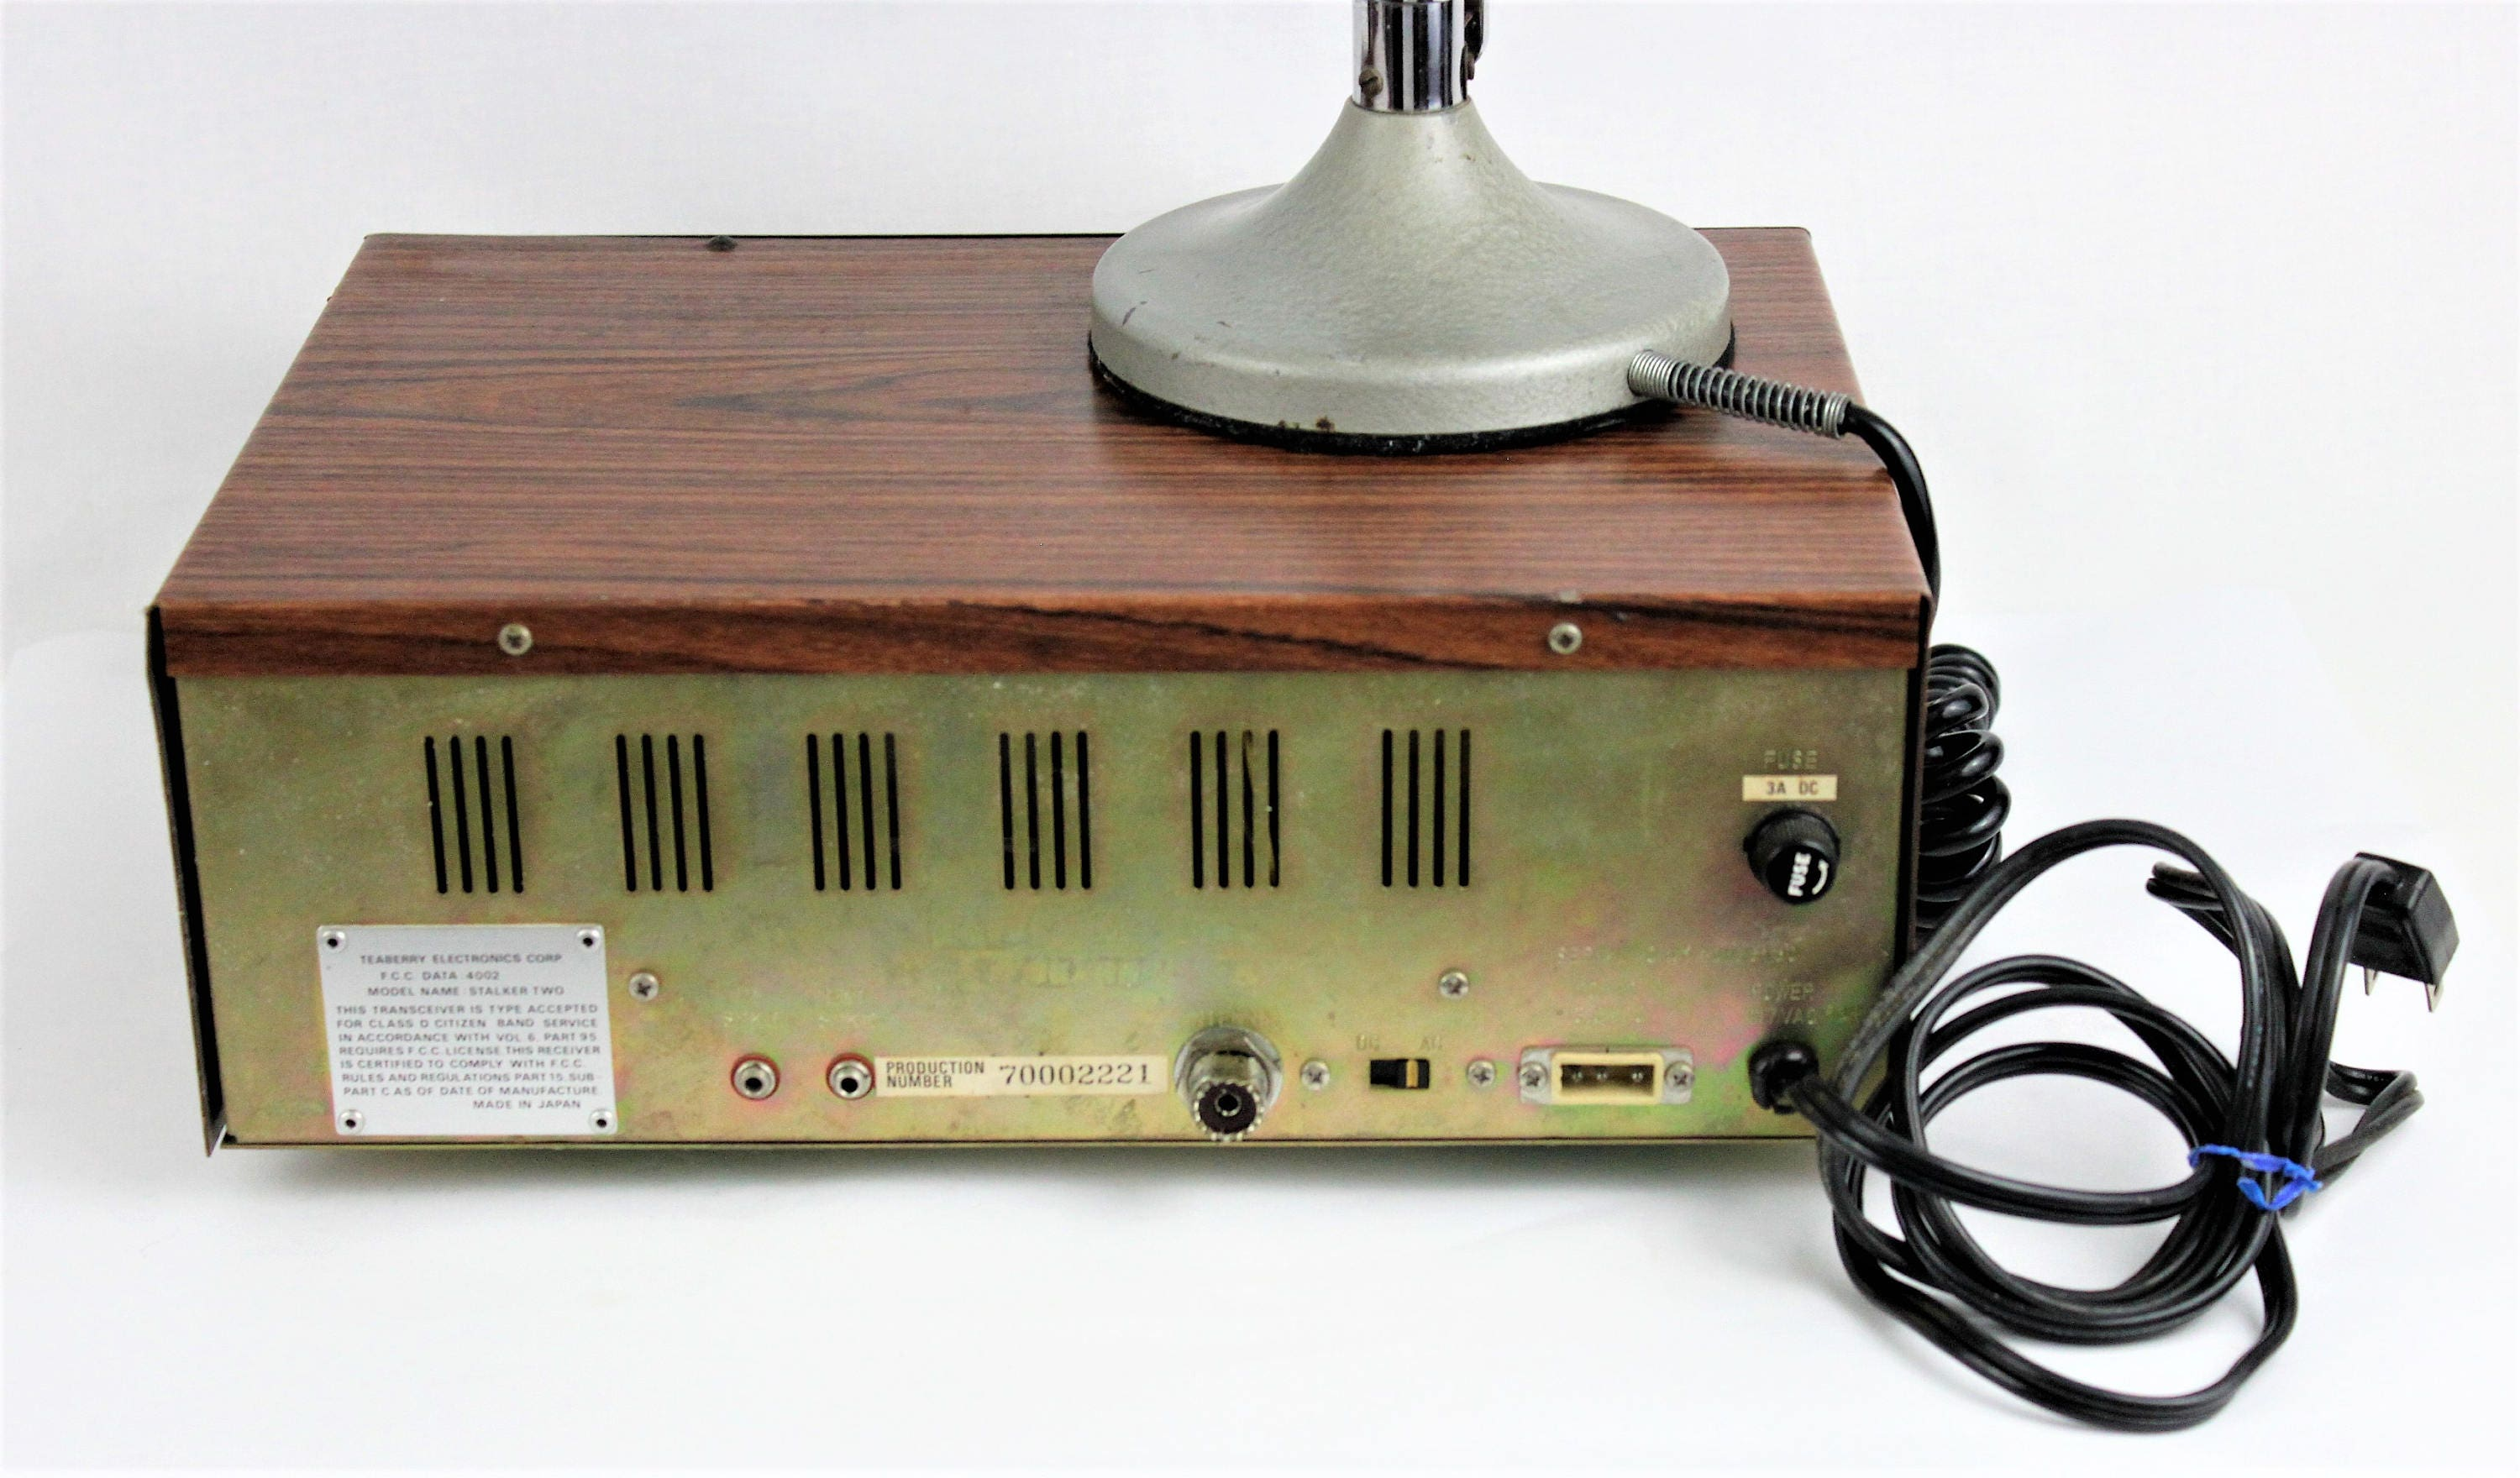 Vintage 1960s Teaberry Stalker Two Base Station CB Radio with the